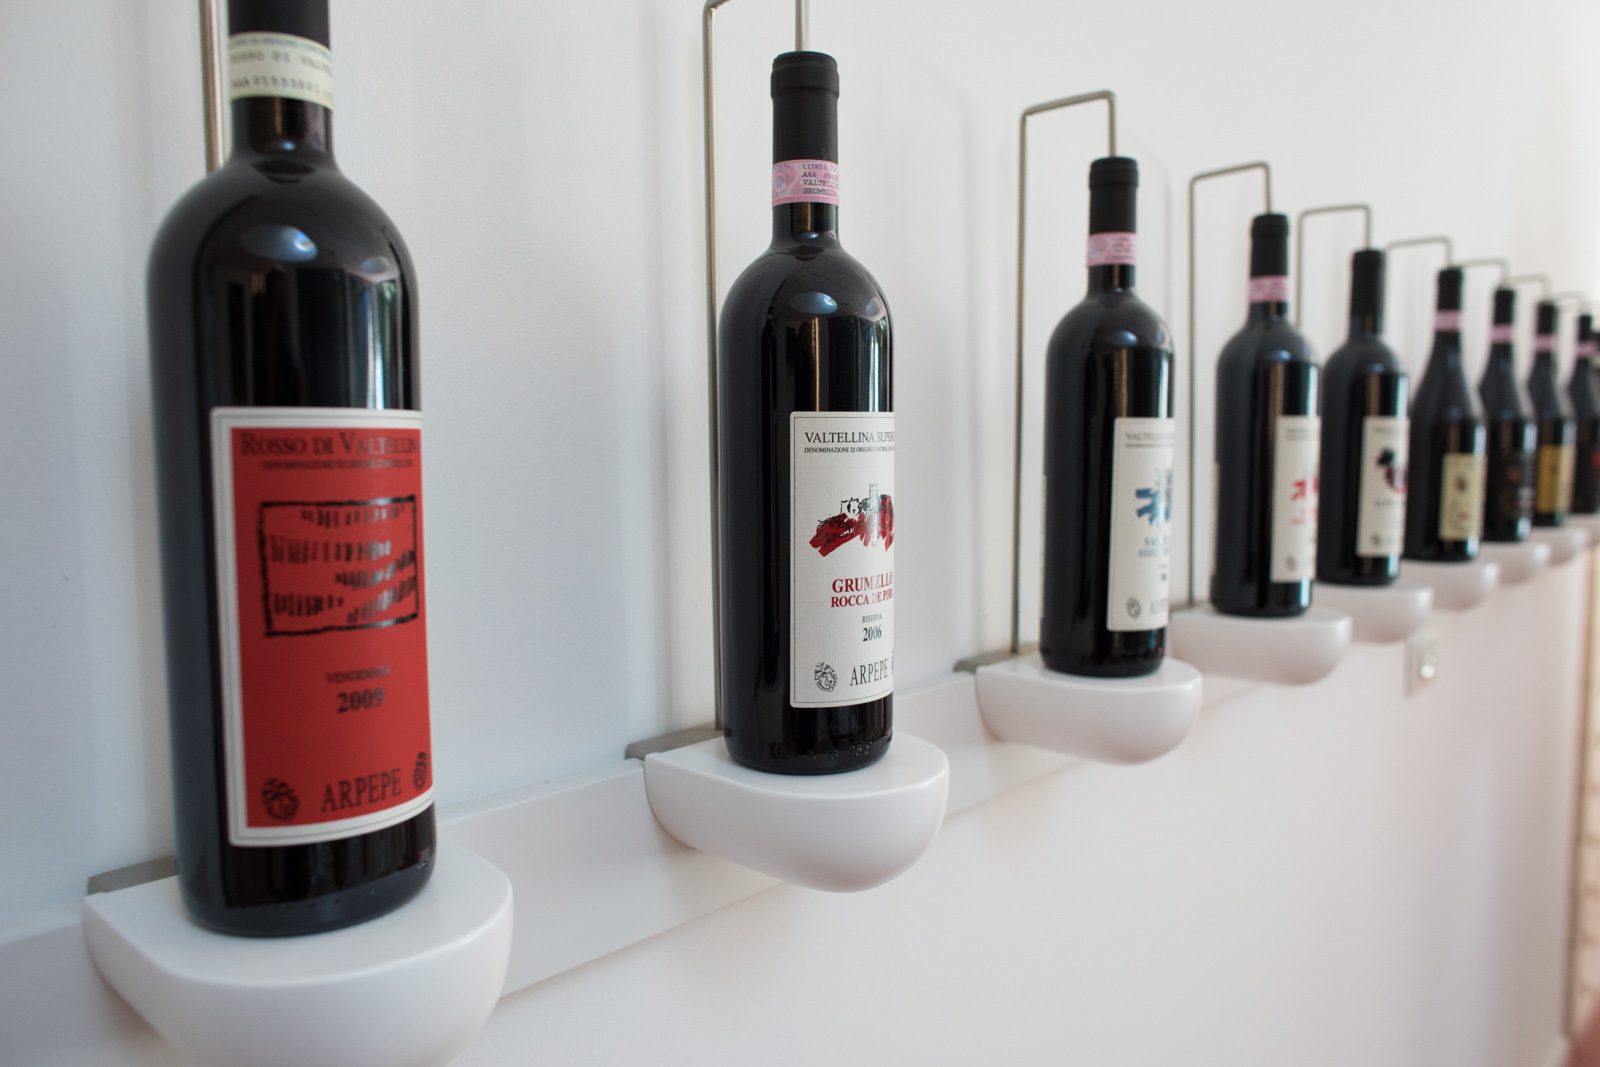 Bottles on display in the ARPEPE tasting room. ©Kevin Day/Opening a Bottle